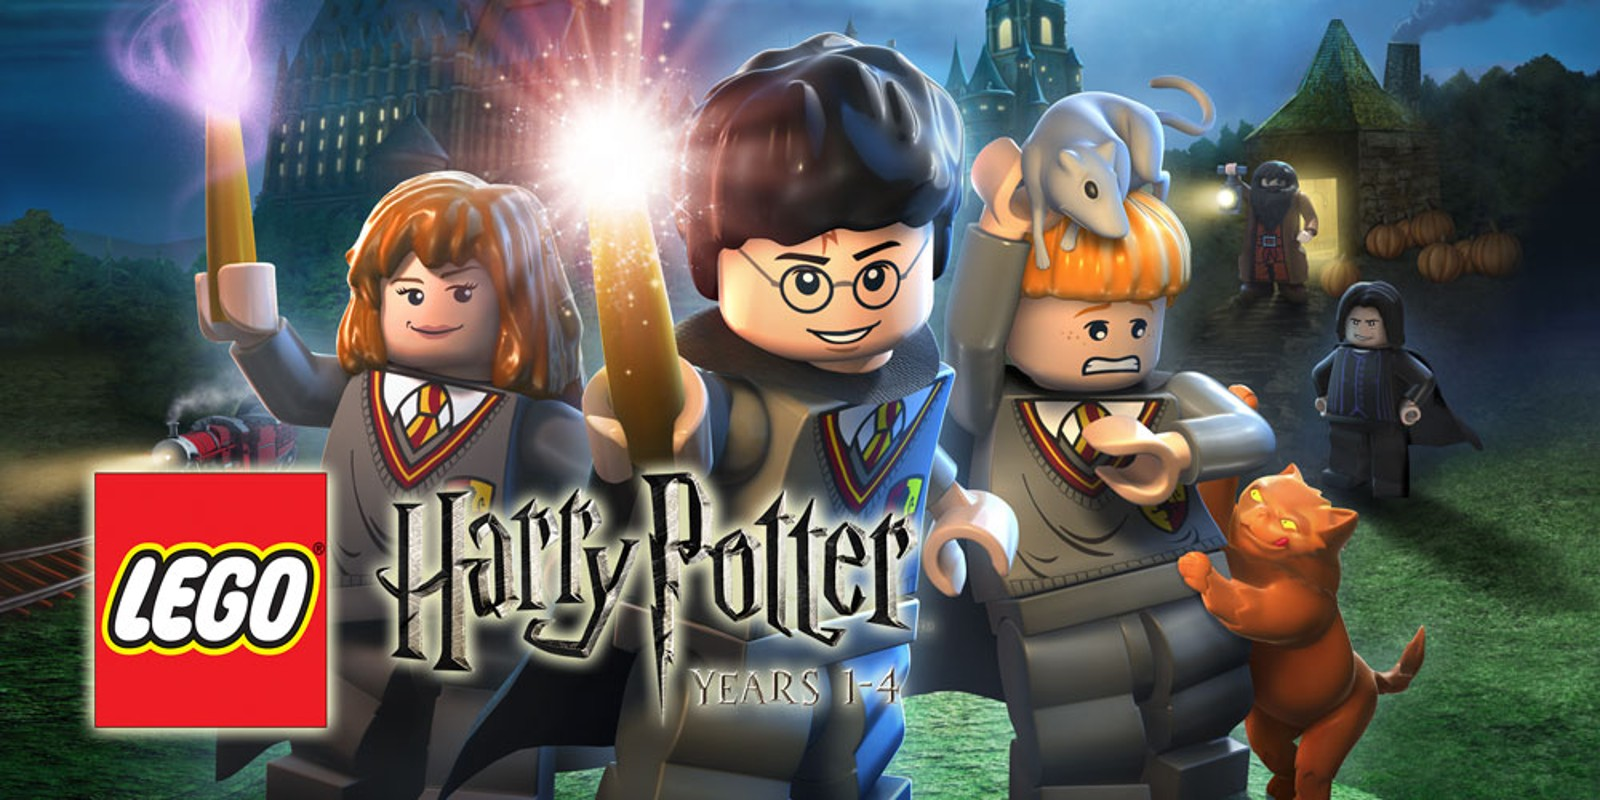 Lego Harry Potter Cheat Codes Latest Update and Everything You Need to Know